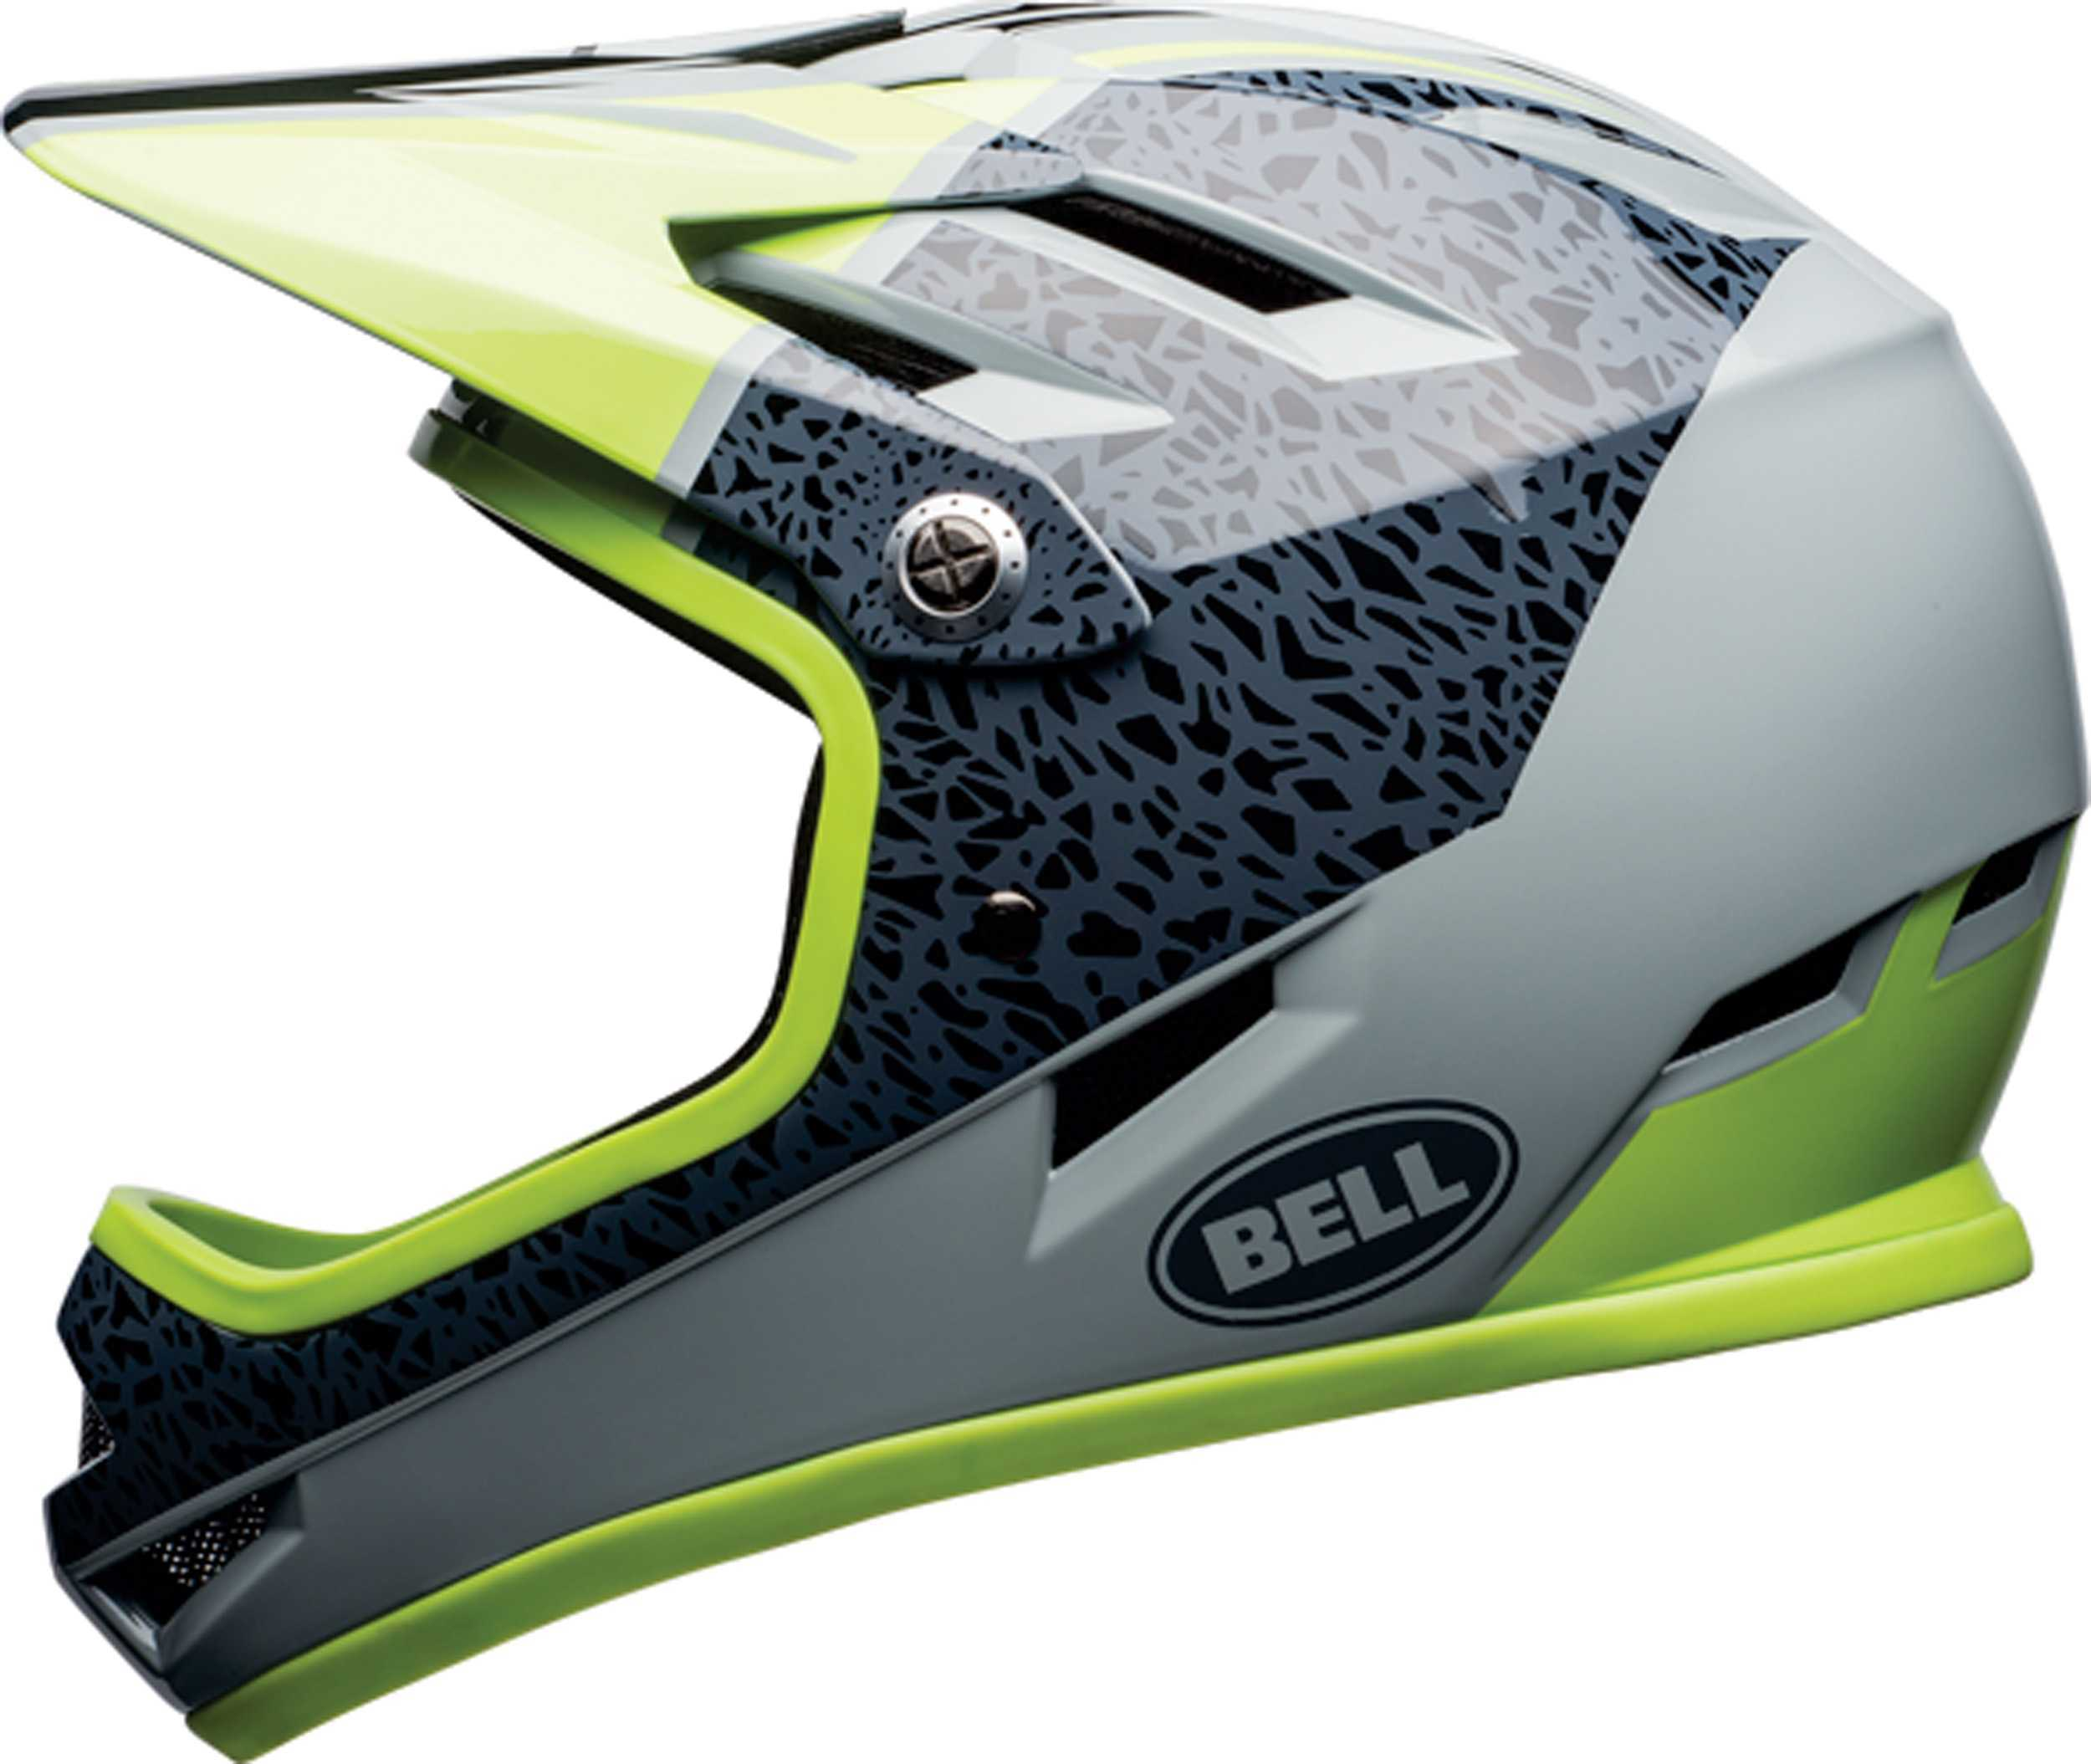 Bell Sanction All MTB/BMX Full Face Helmet | Helmets